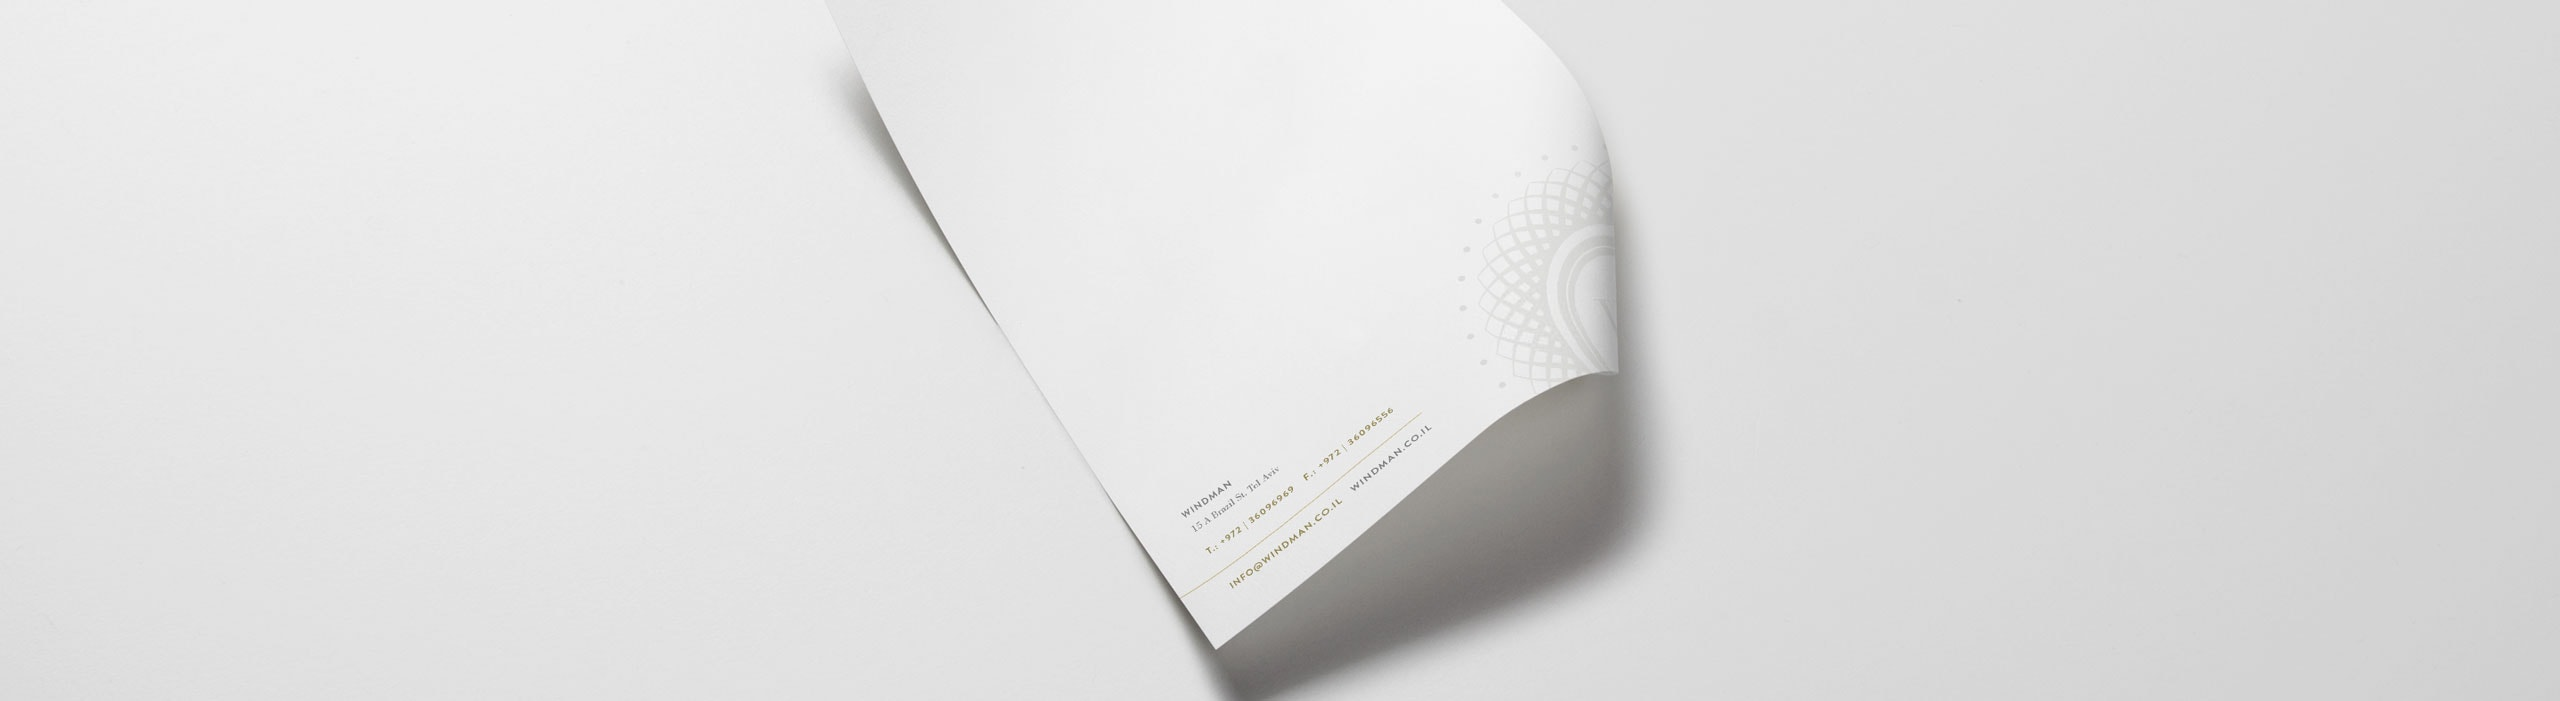 Windman - natie-windman-letterhead-design - Natie Branding Agency